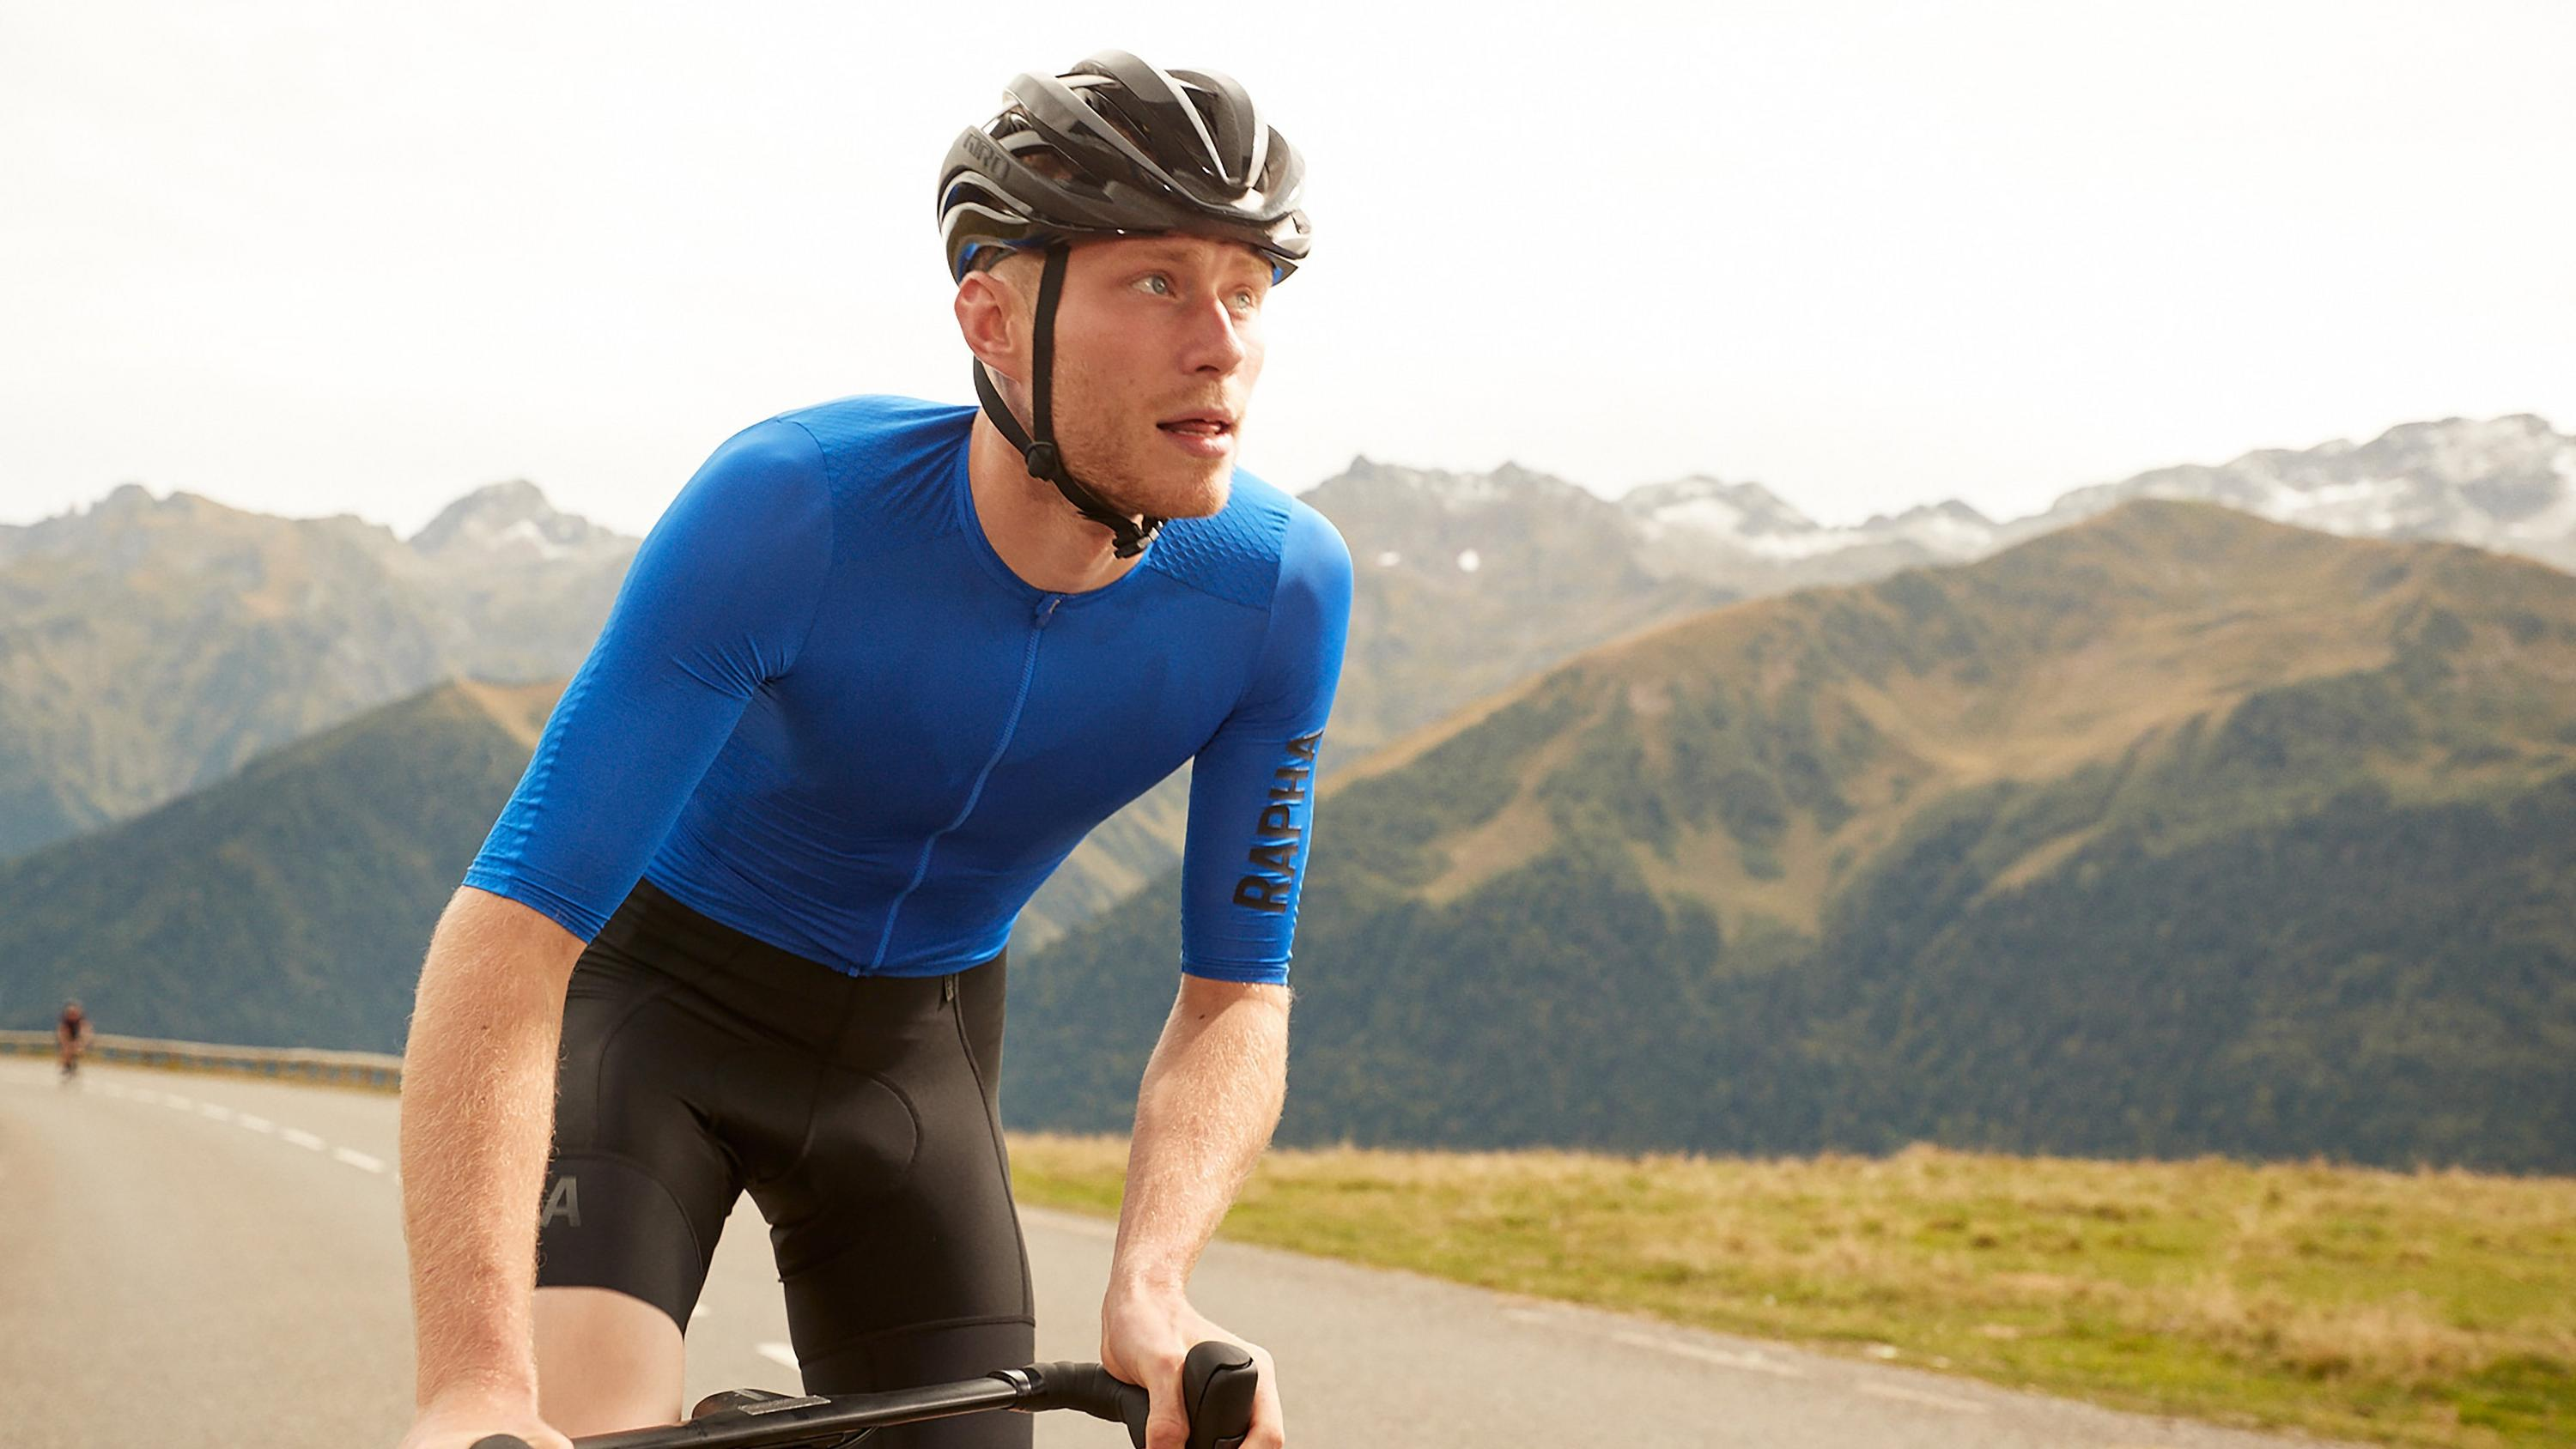 Pro Team Aero Jersey Rapha Pro Team Cycling Collection Clothing Fastest Top Cycle Gear Rapha